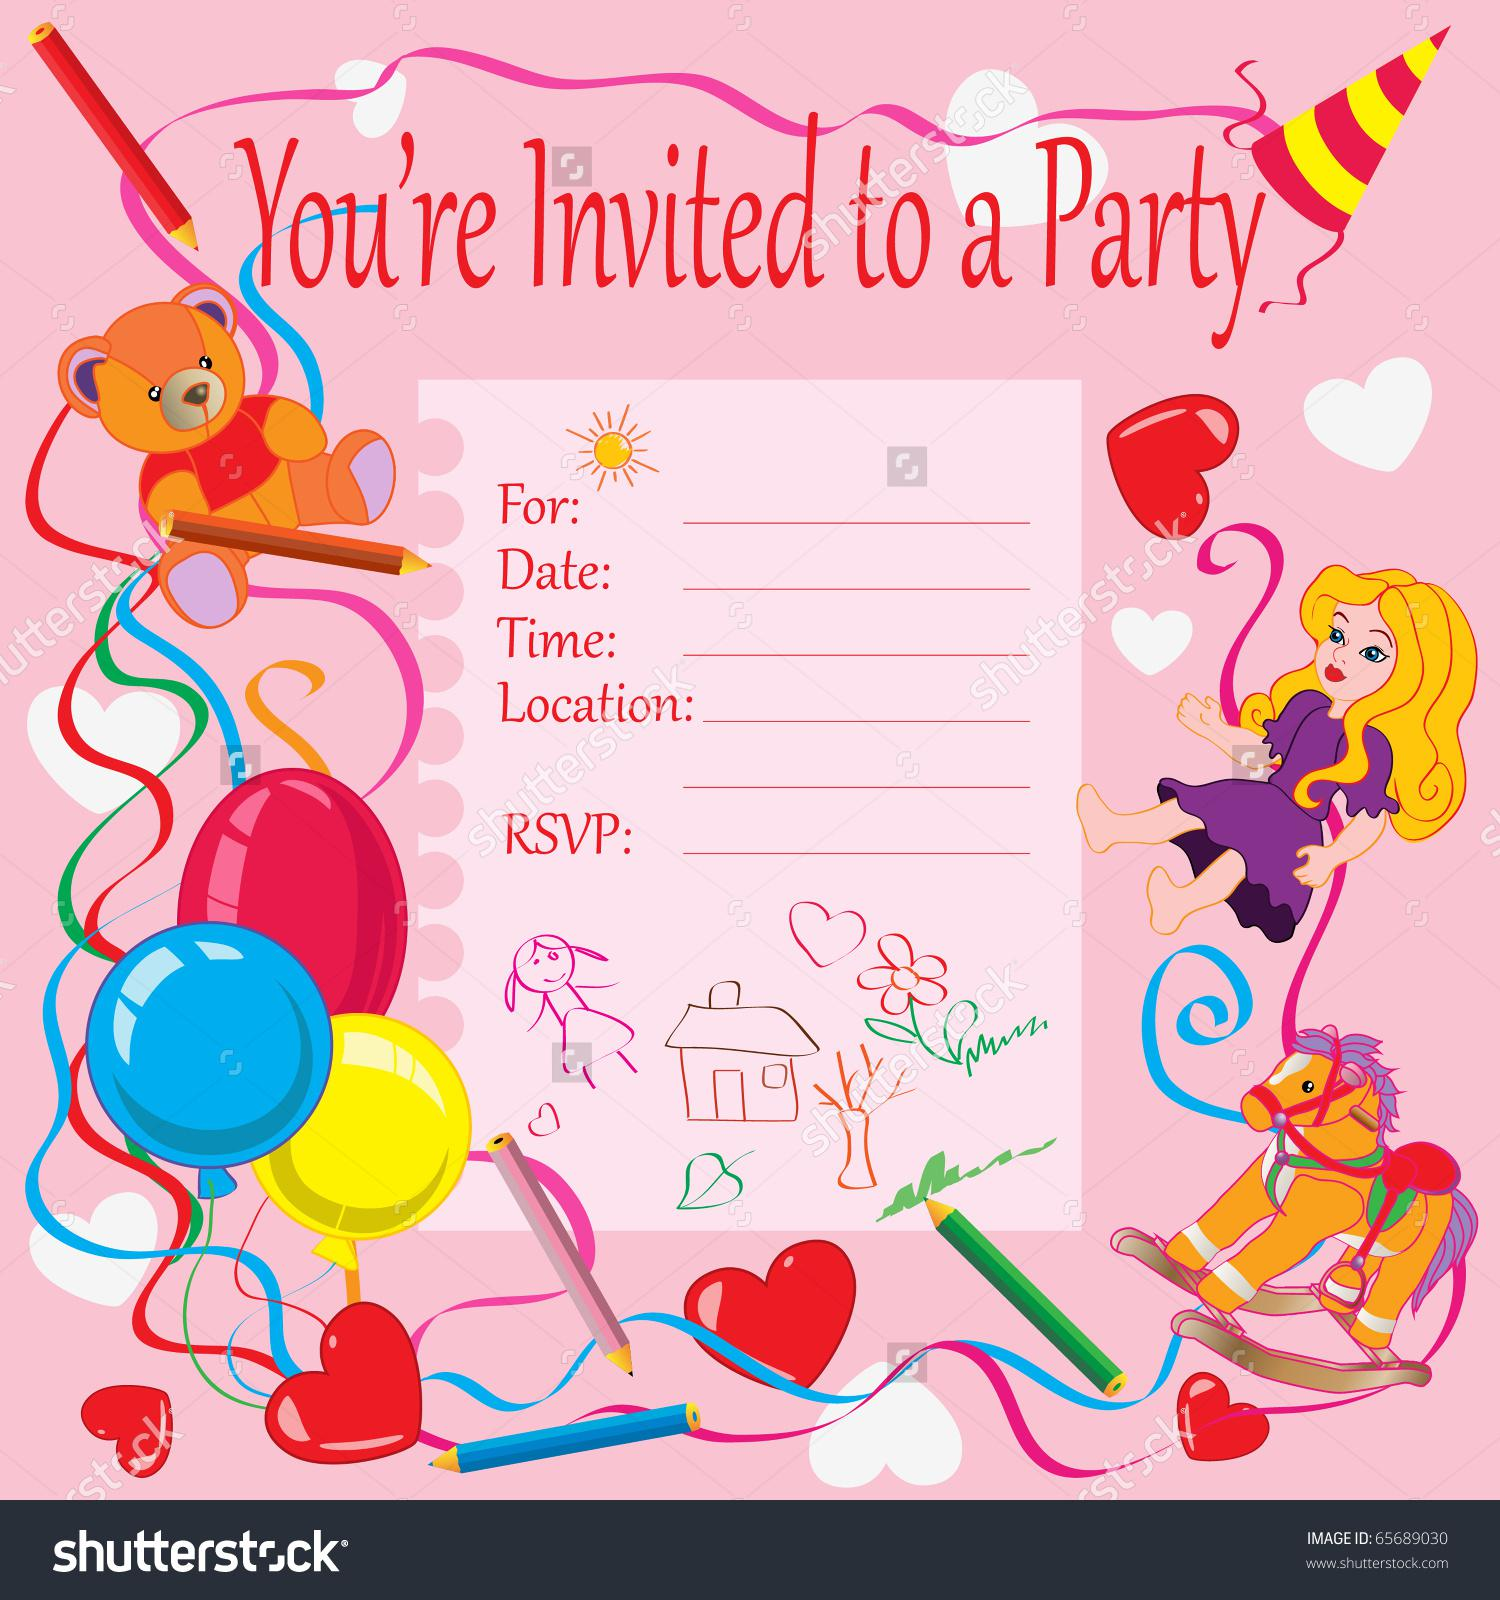 4 Step Make Your Own Birthday Invitations Free Sample Printable